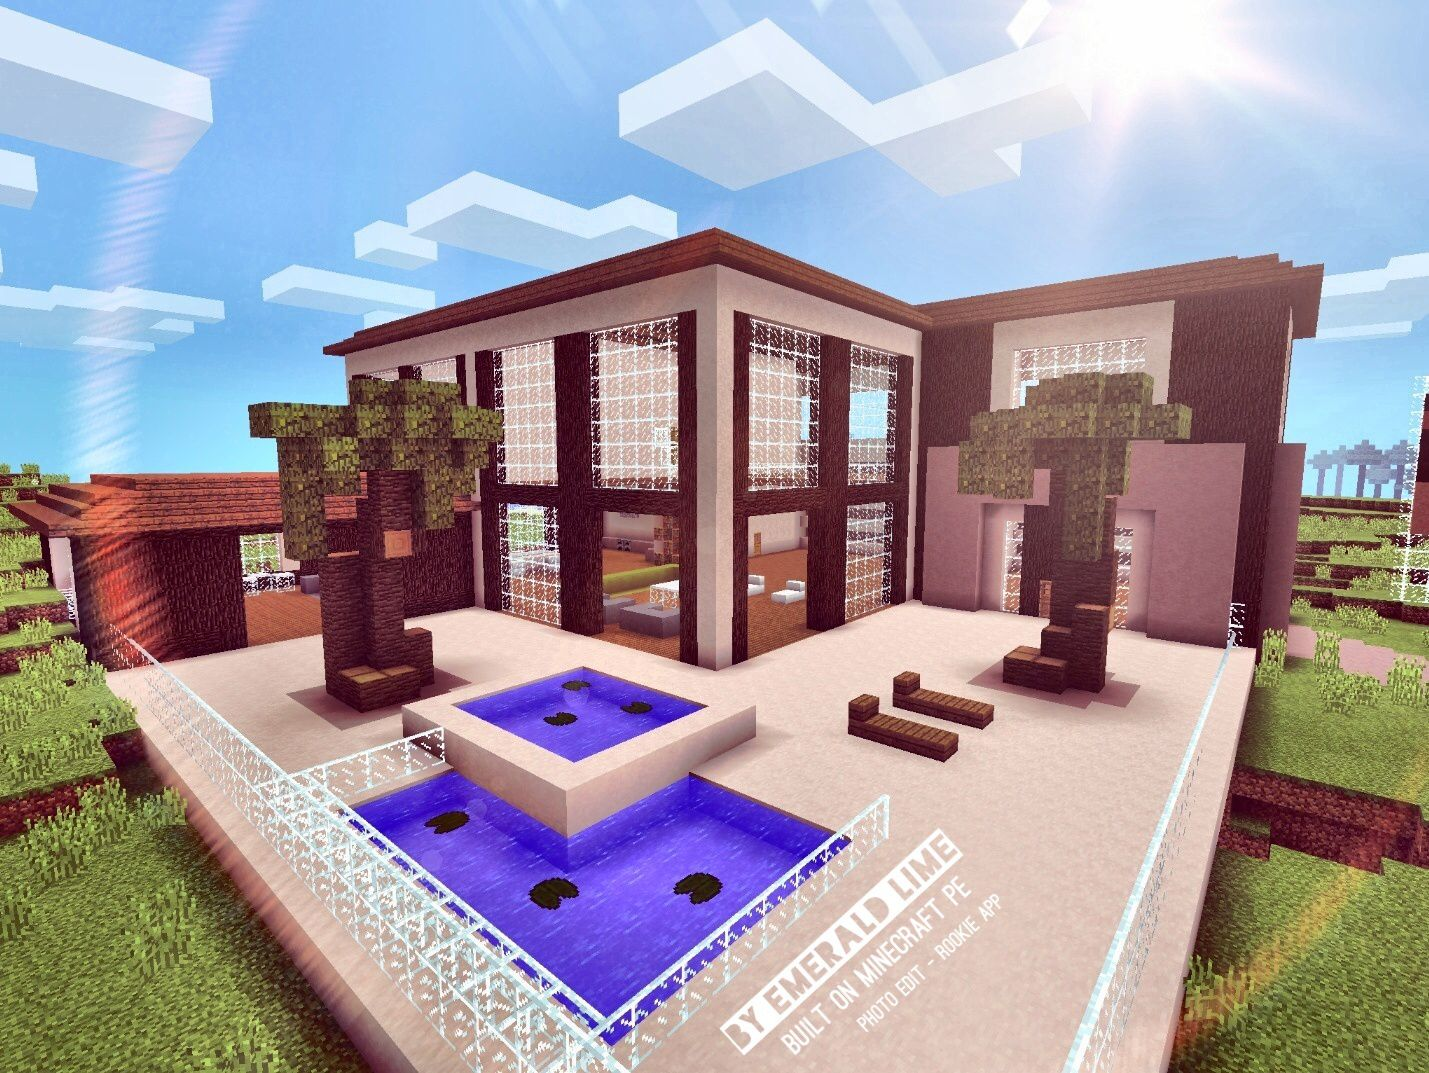 1000+ ideas about Modern Minecraft Houses on Pinterest Minecraft ... - ^